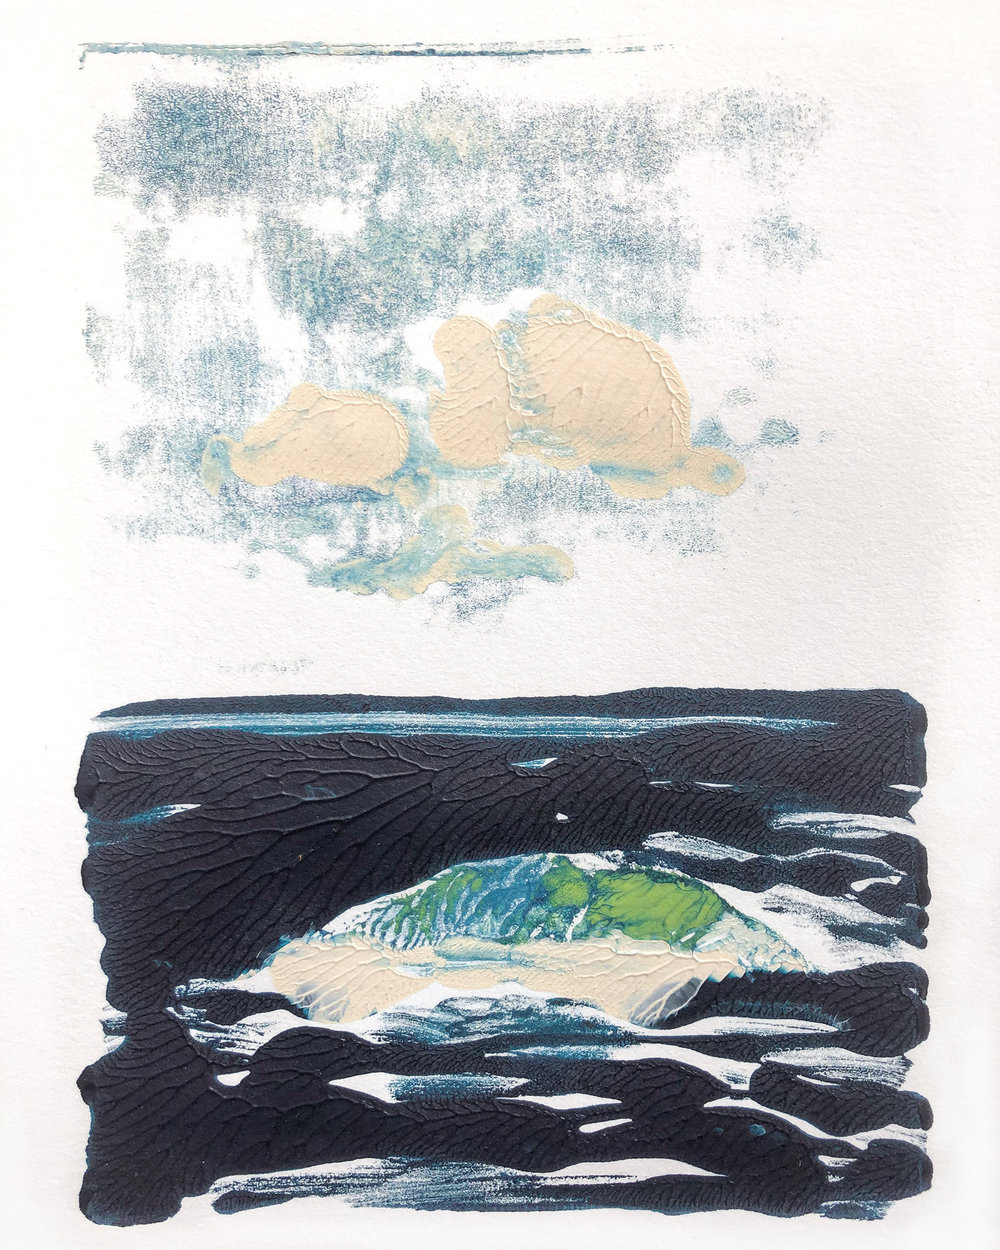 "Island:Cloud III (Island in the Stream)    gelatin monoprint  6"" x 8"" (9"" x 12"" sheet size"")  unique  2018  (sold)"